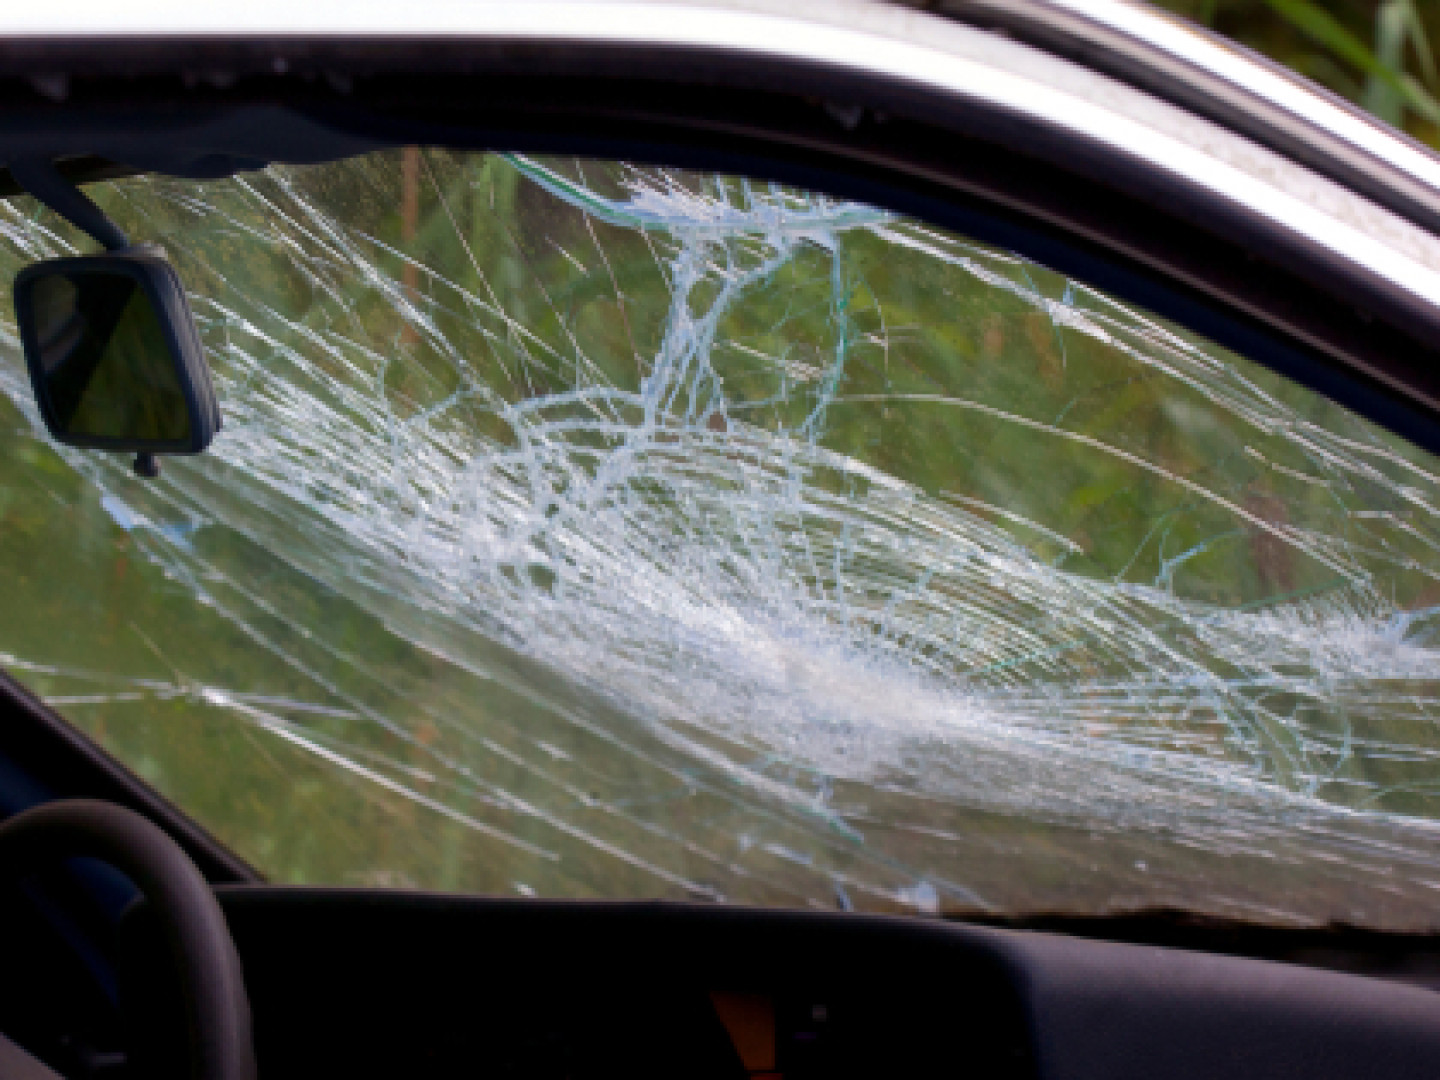 Don't Drive Around With a Chipped Windshield